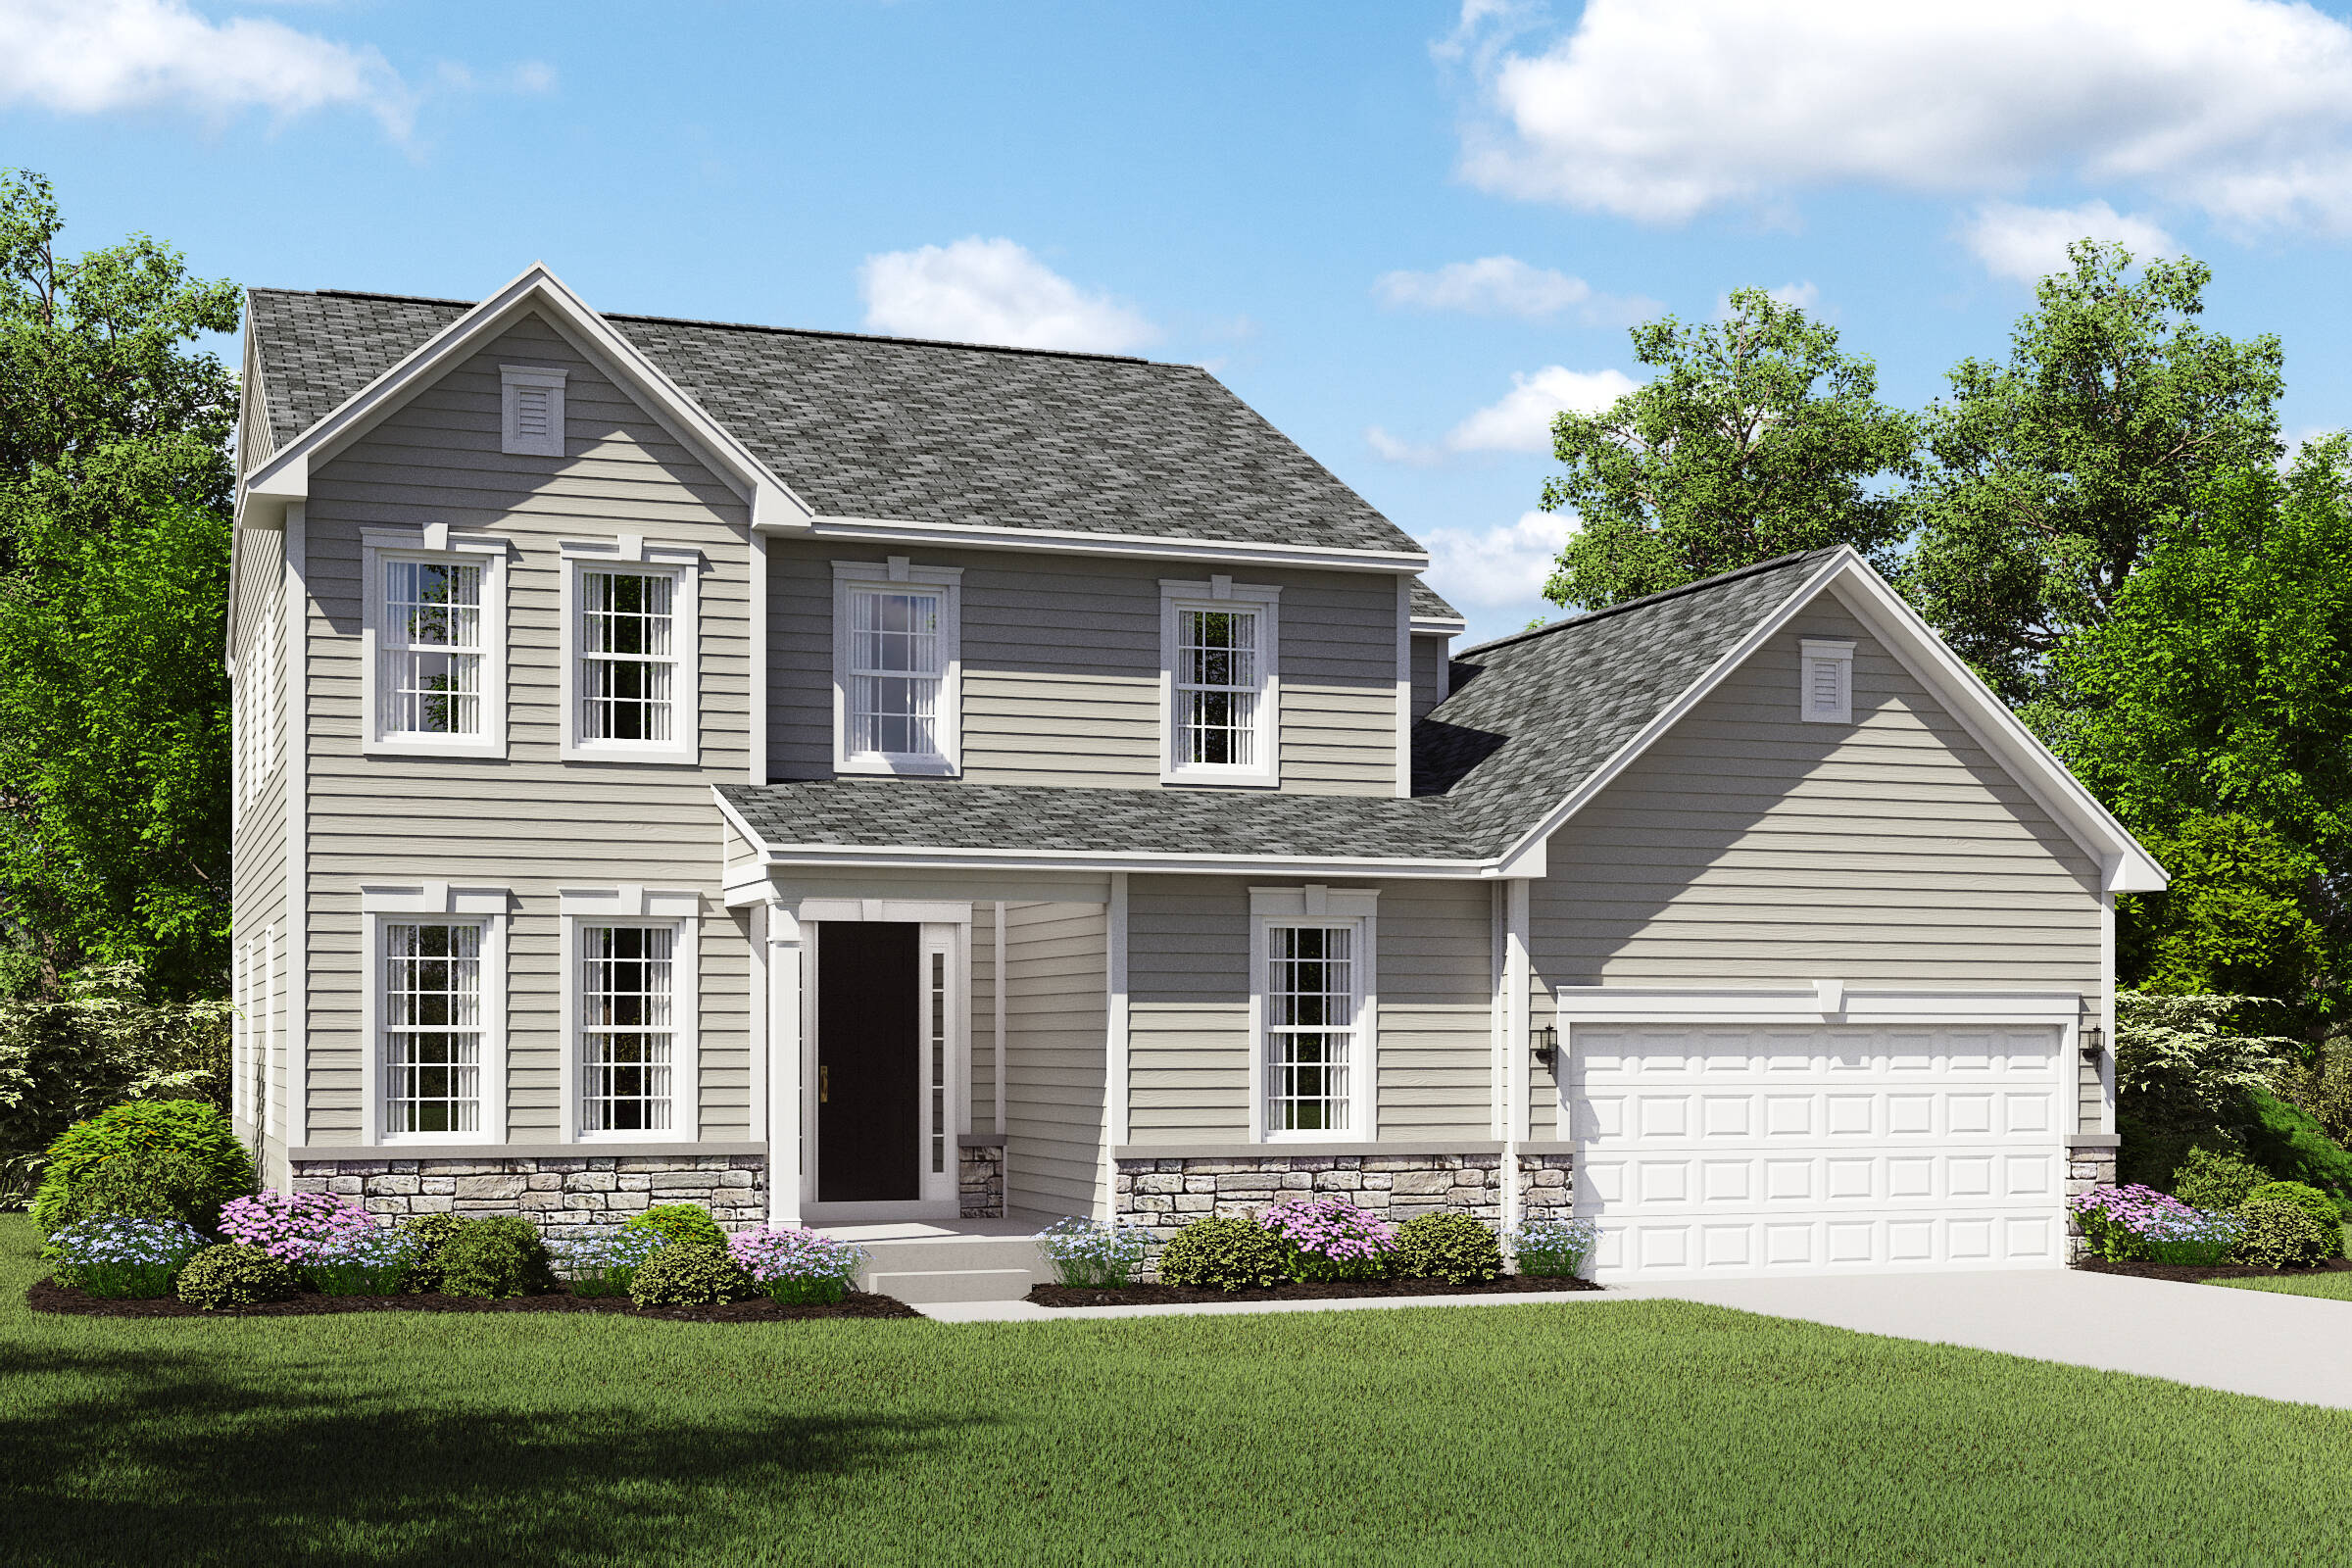 hopewell bt new home two story cleveland ohio